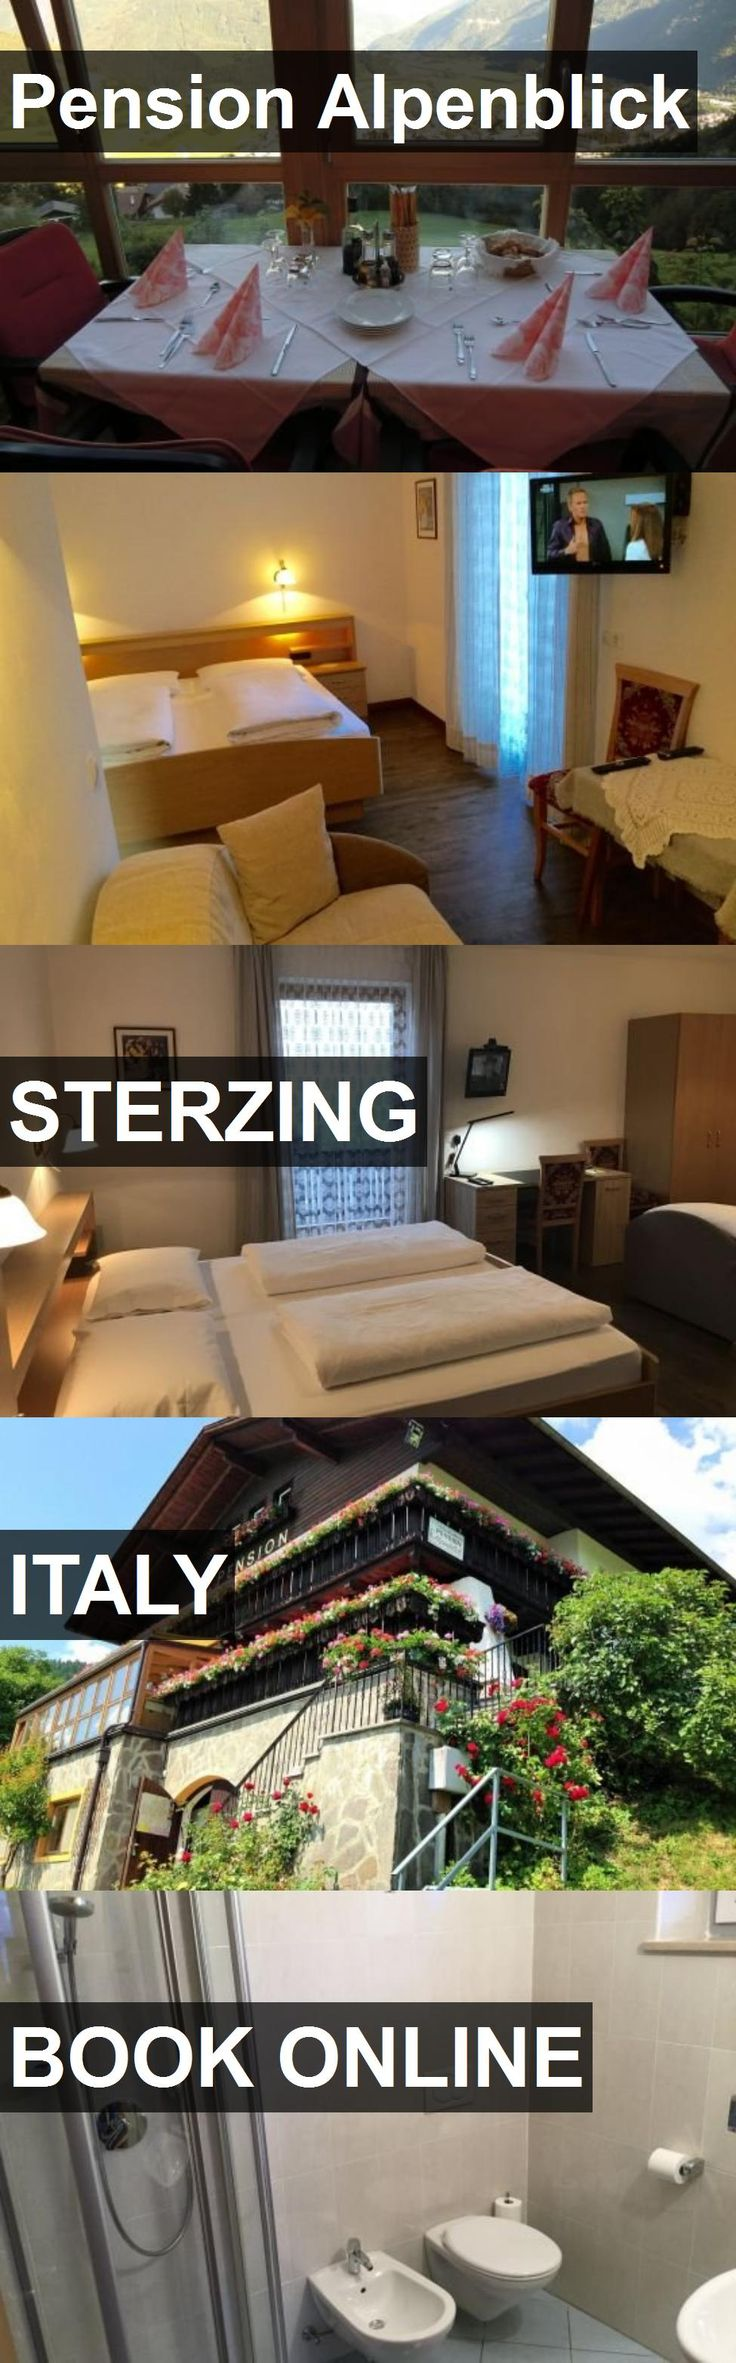 Hotel Pension Alpenblick in Sterzing, Italy. For more information, photos, reviews and best prices please follow the link. #Italy #Sterzing #travel #vacation #hotel